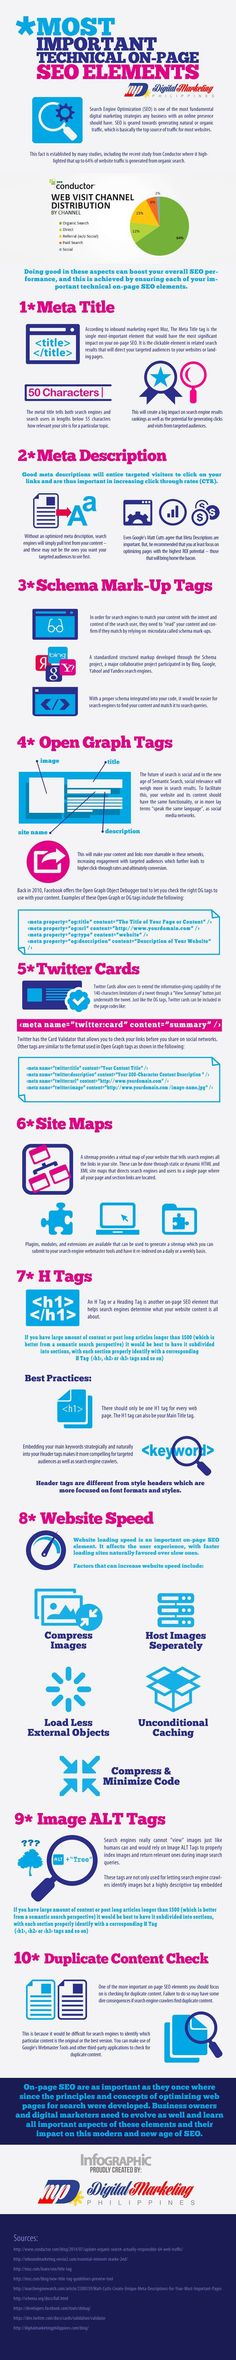 Core Elements of Effective Search Engine Optimization [INFOGRAPHIC] #searchengineoptimizationcompany,